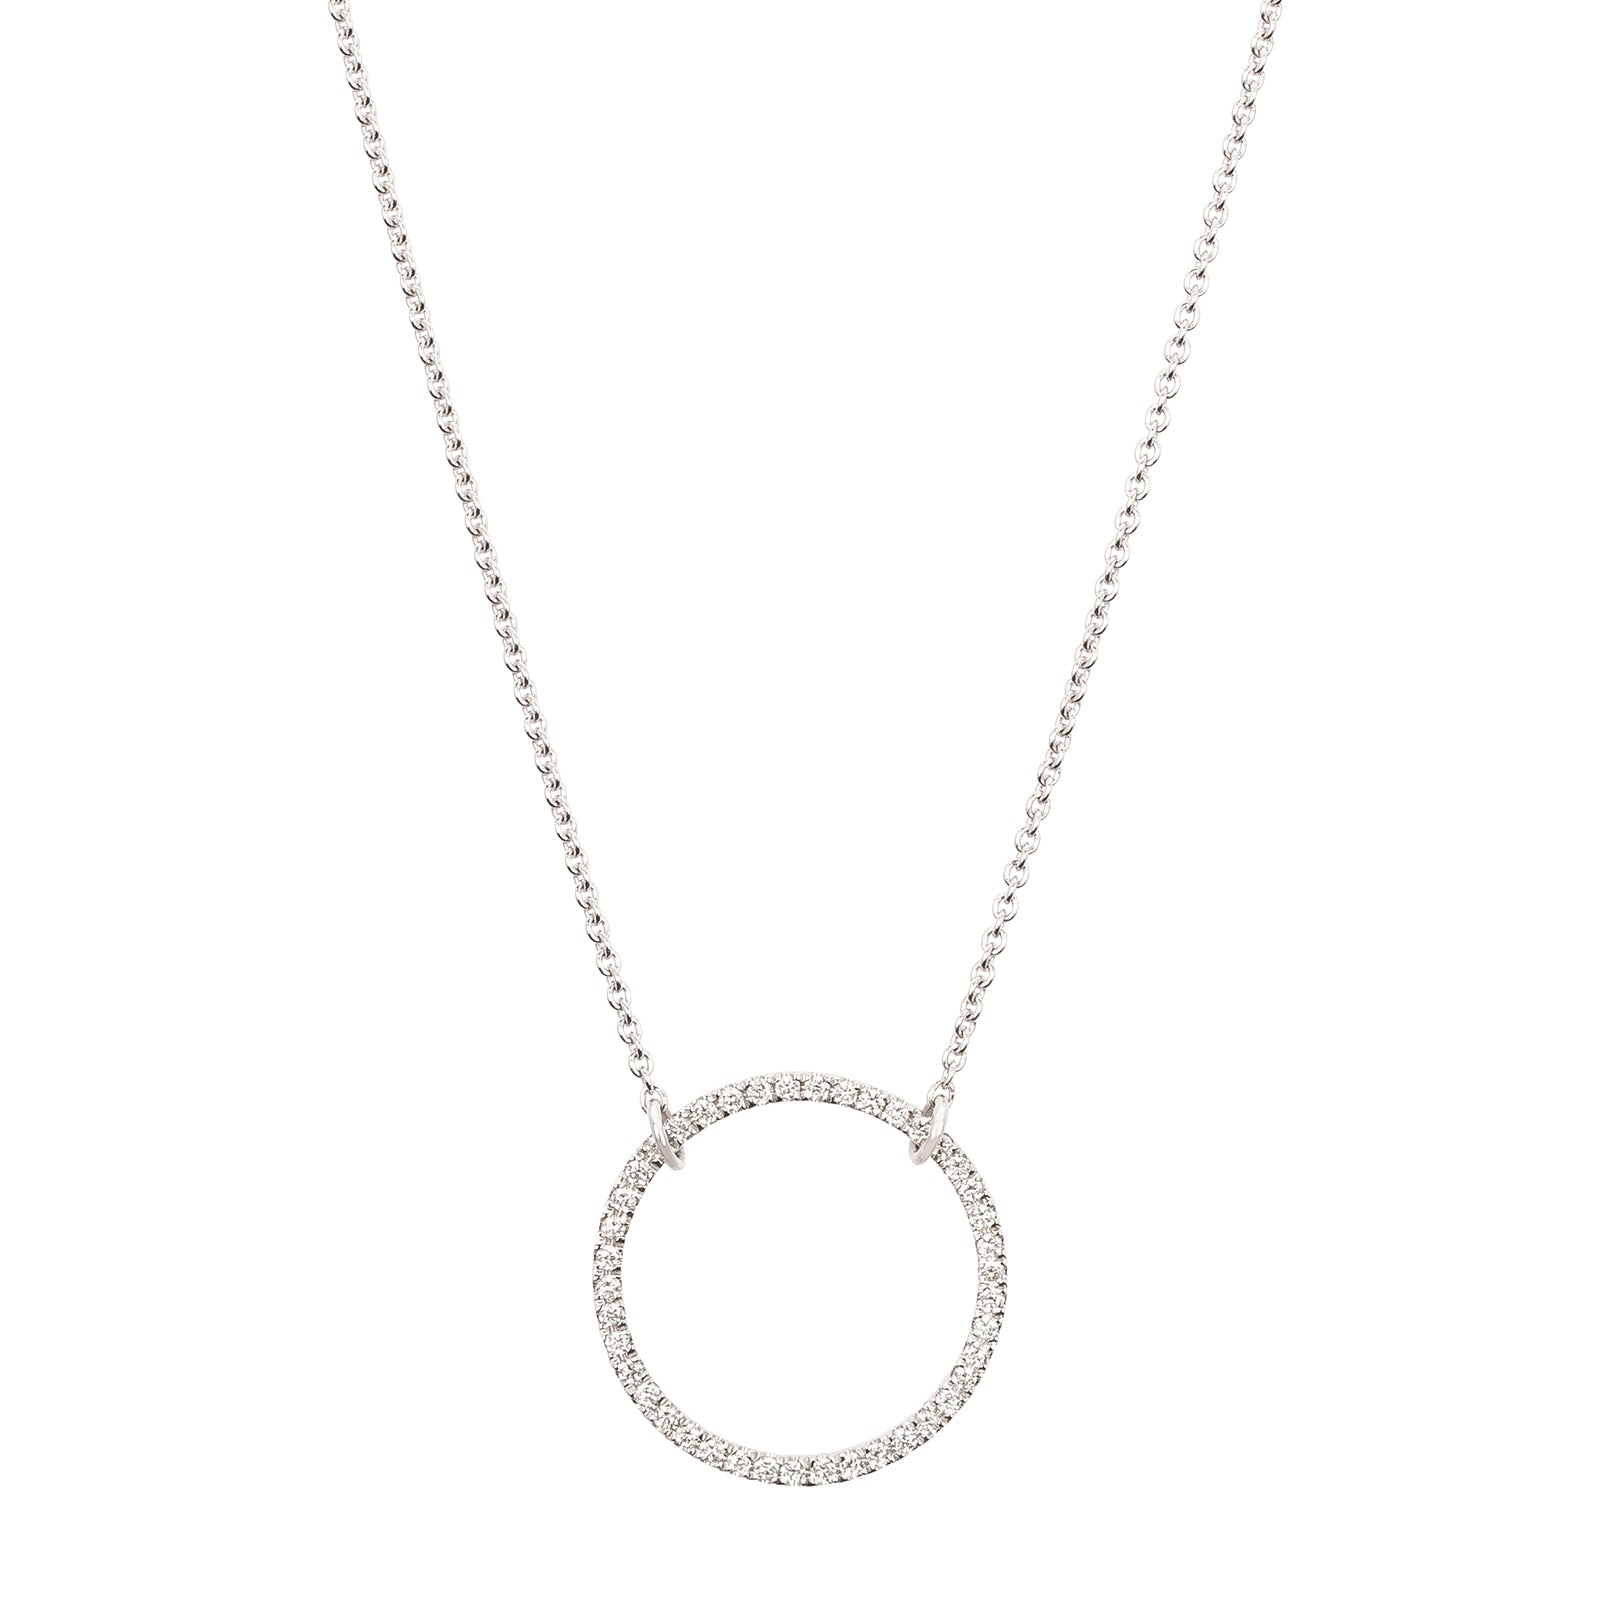 Rosa de la Cruz Small Eternity Circle Charm Necklace - White Gold - Necklaces - Broken English Jewelry